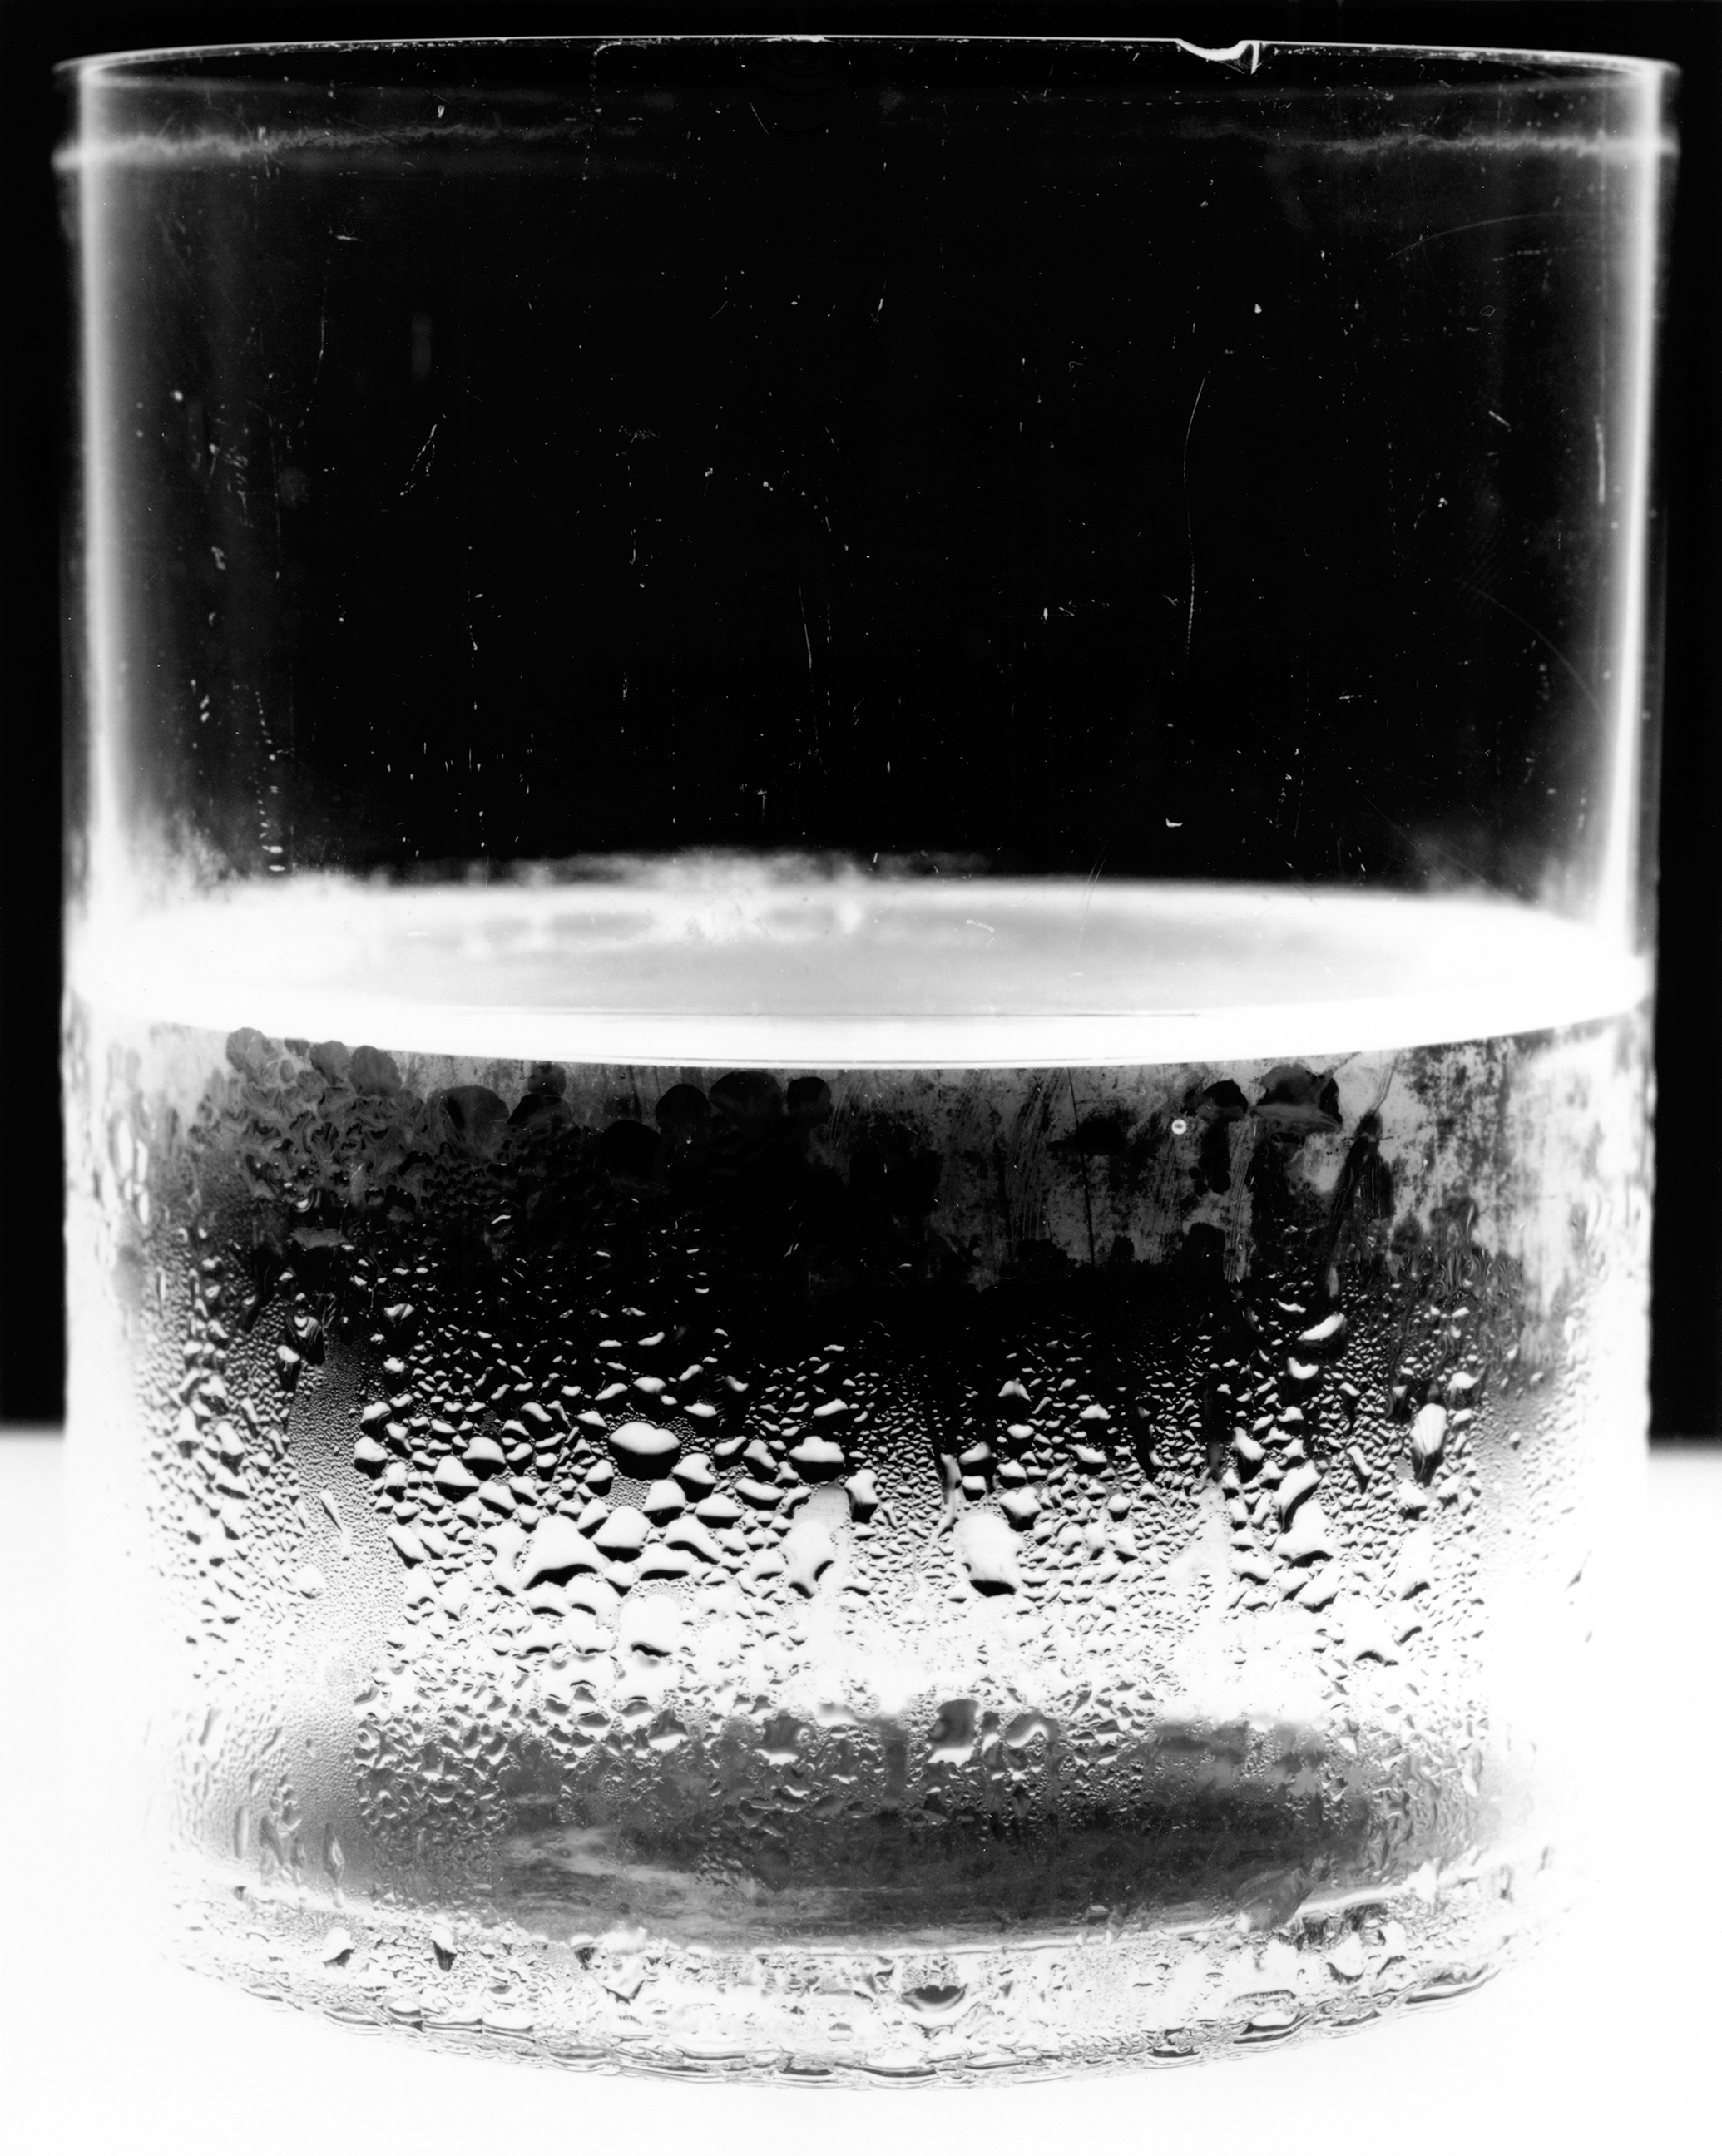 Water Glass 2, 2004 (Variant)